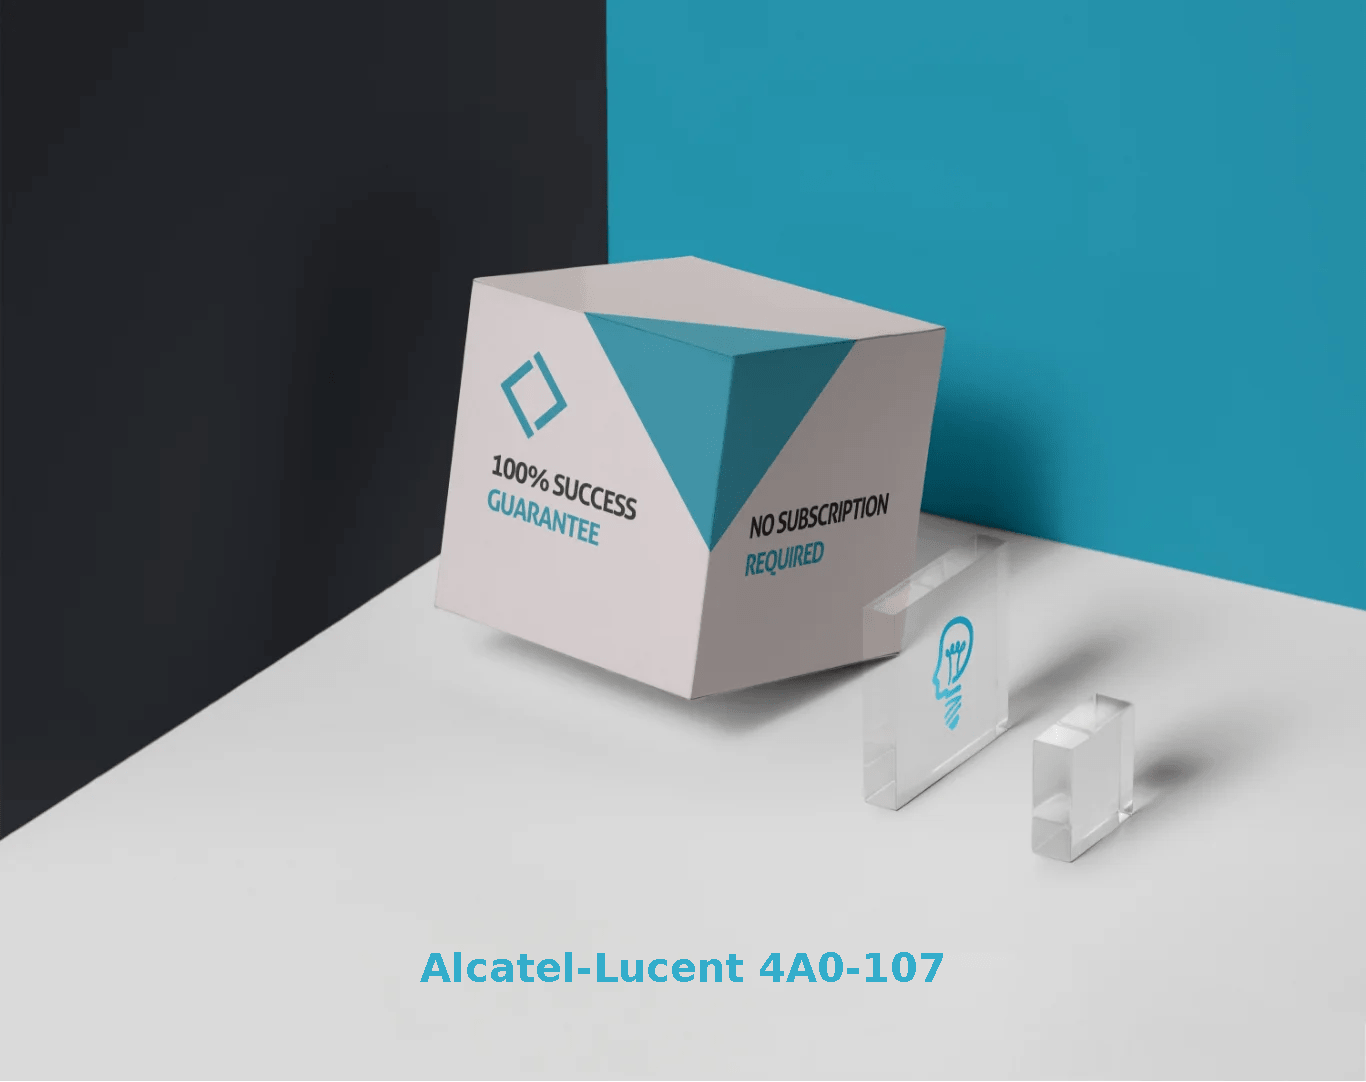 Alcatel-Lucent 4A0-107 Exams